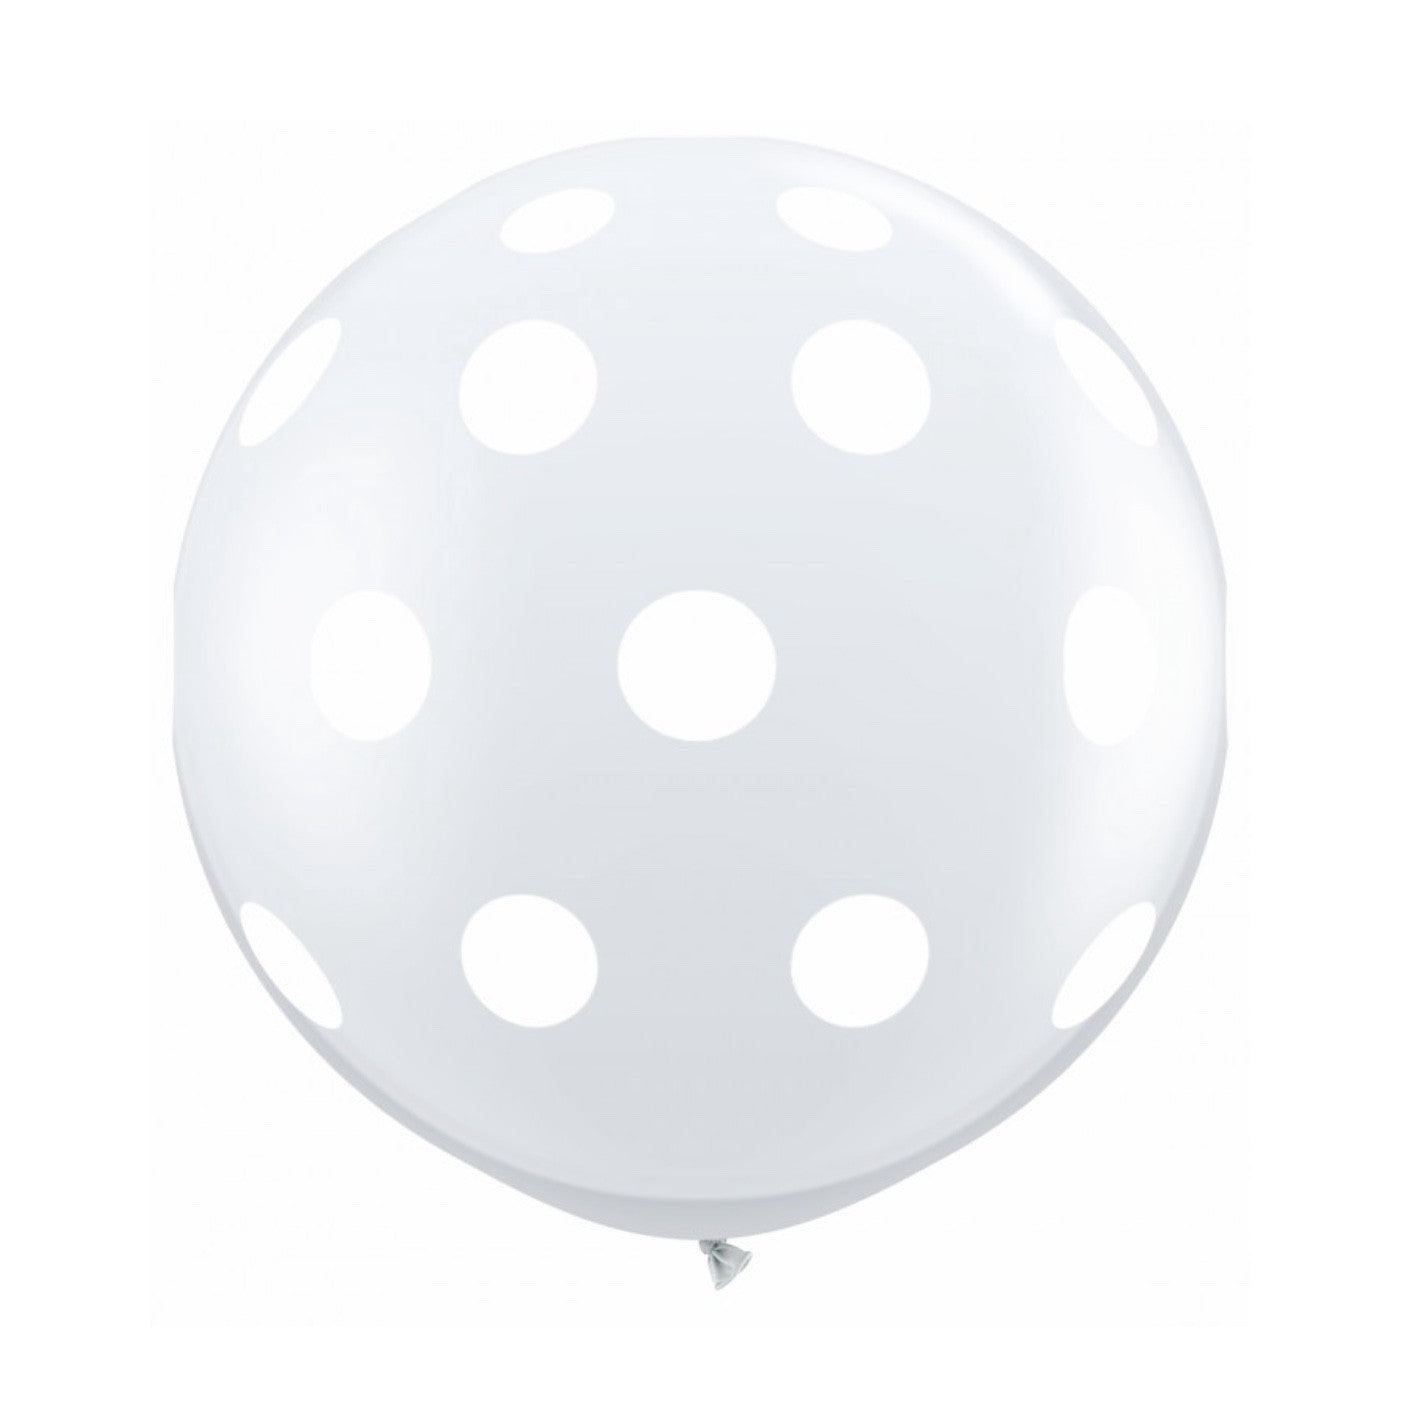 "Giant Round Balloon 36""- Diamond clear with White Dots, SE-Surprize Enterprize, Putti Fine Furnishings"